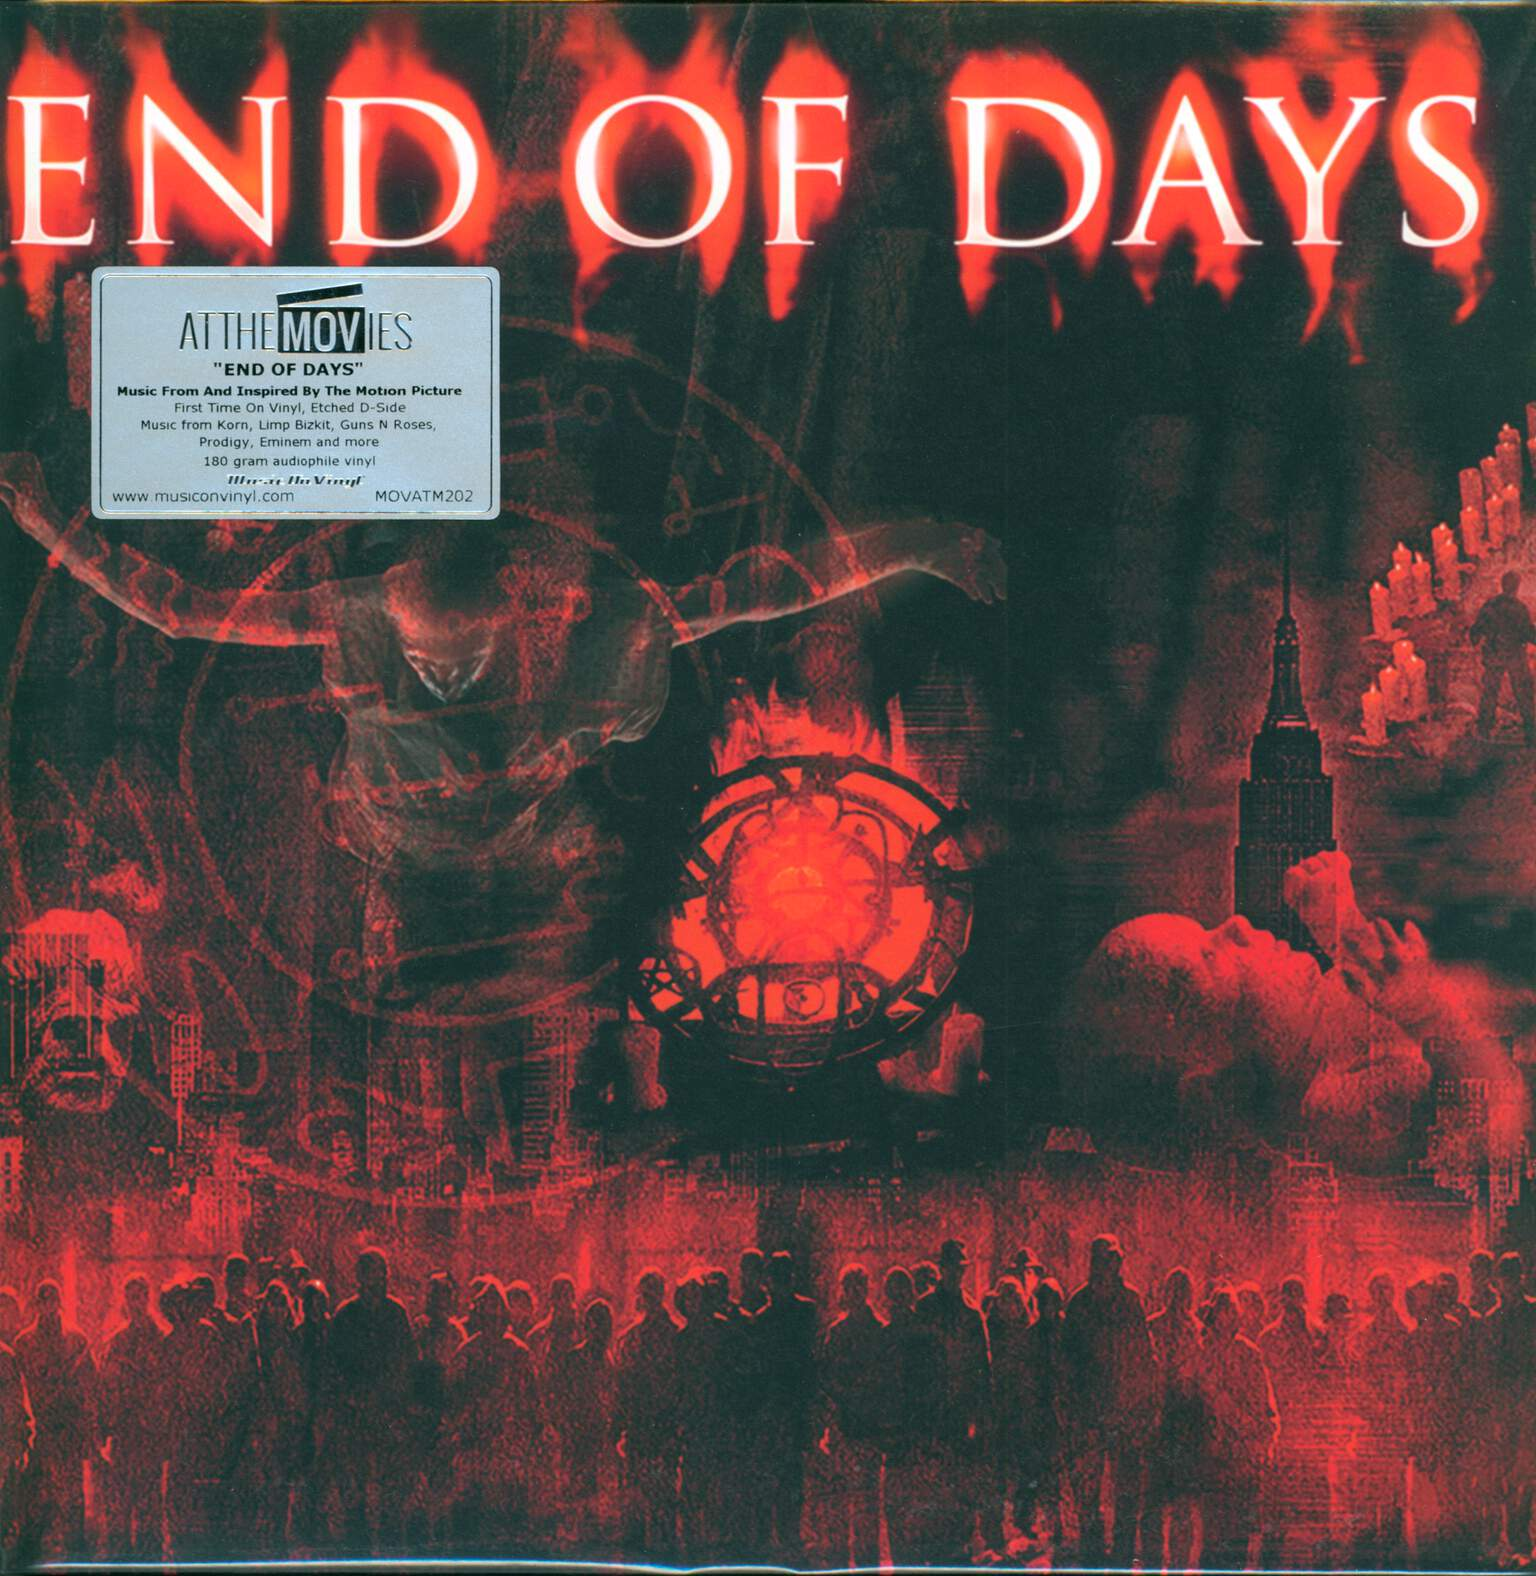 Various: End Of Days (Music From And Inspired By The Motion Picture), 1×LP (Vinyl), 1×LP (Vinyl)